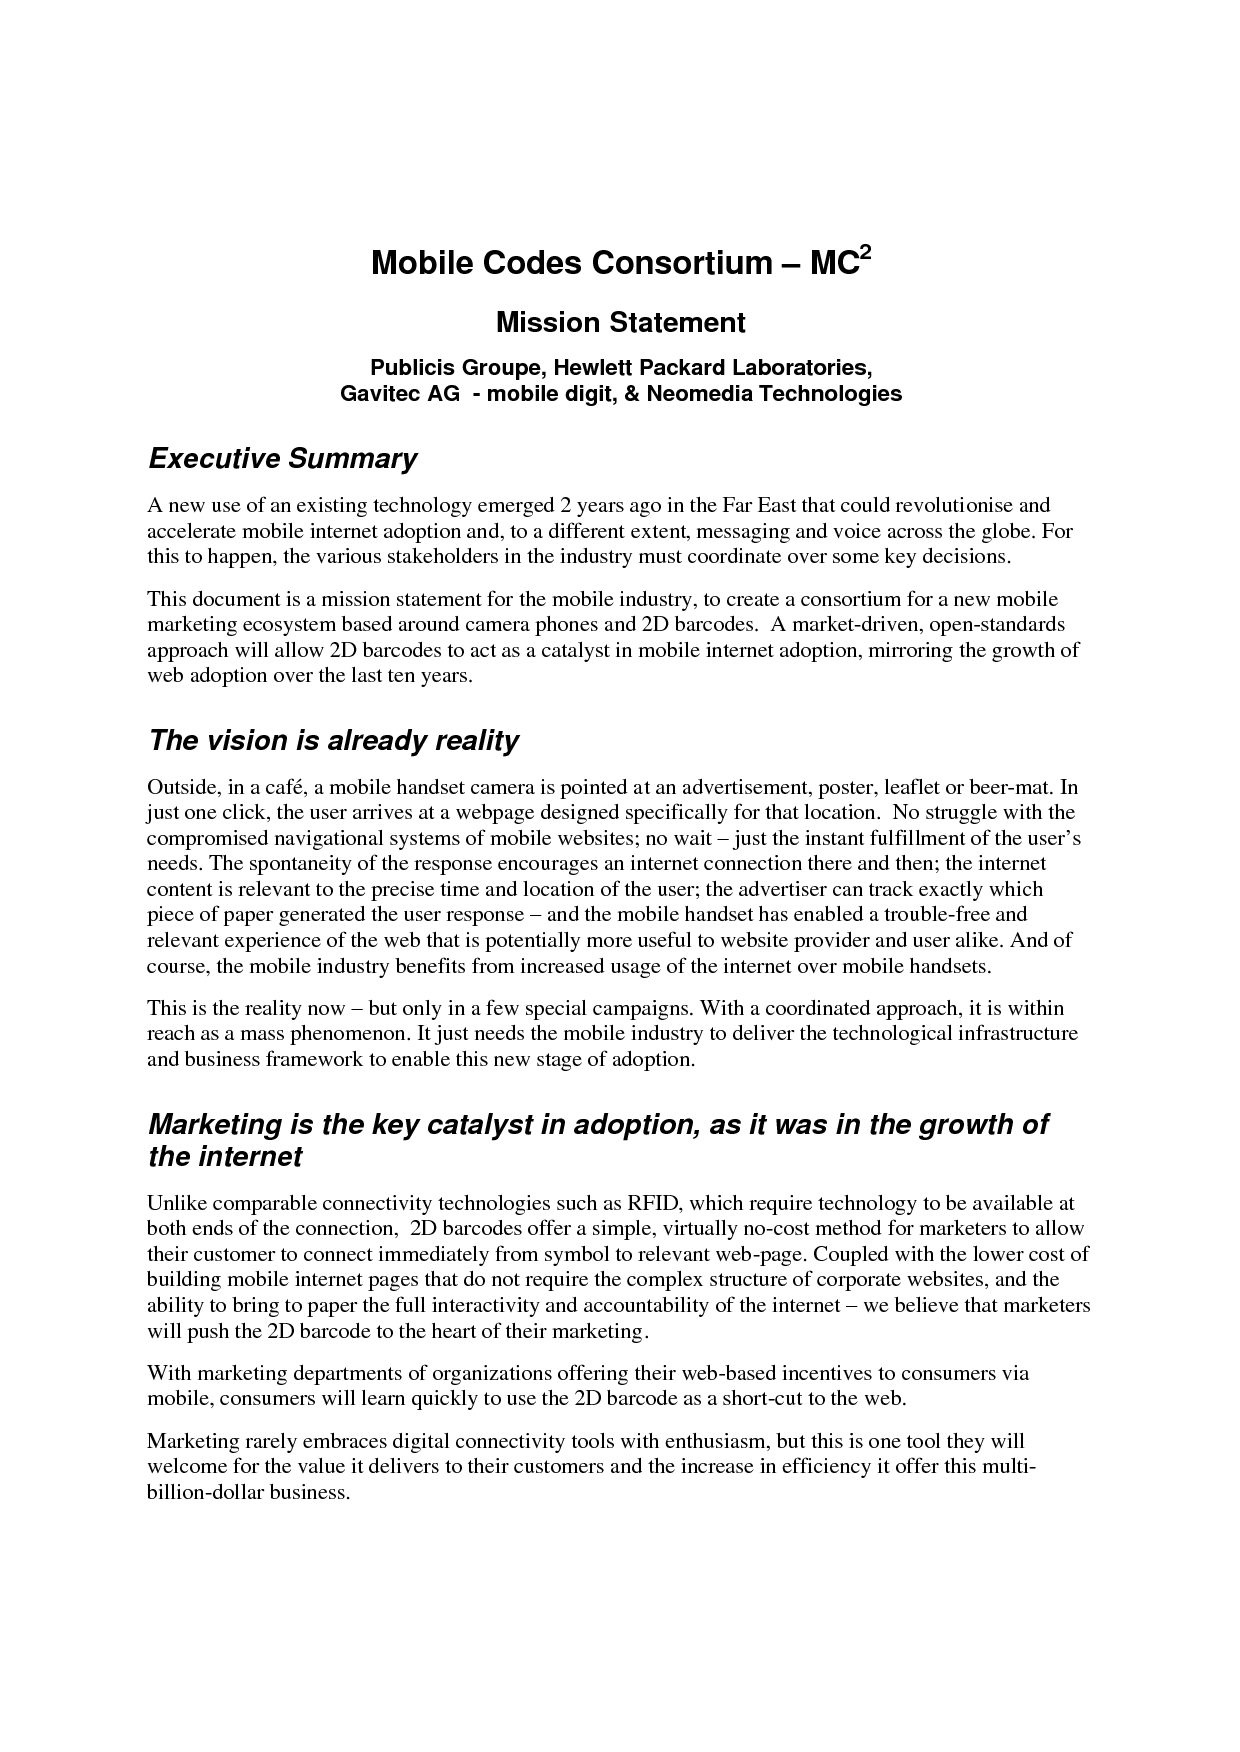 014 Research Paper Argumentative Essays Disney Mission Statement Template Stirring Essay About Technology Limiting Creativity For High School Topics Music Full